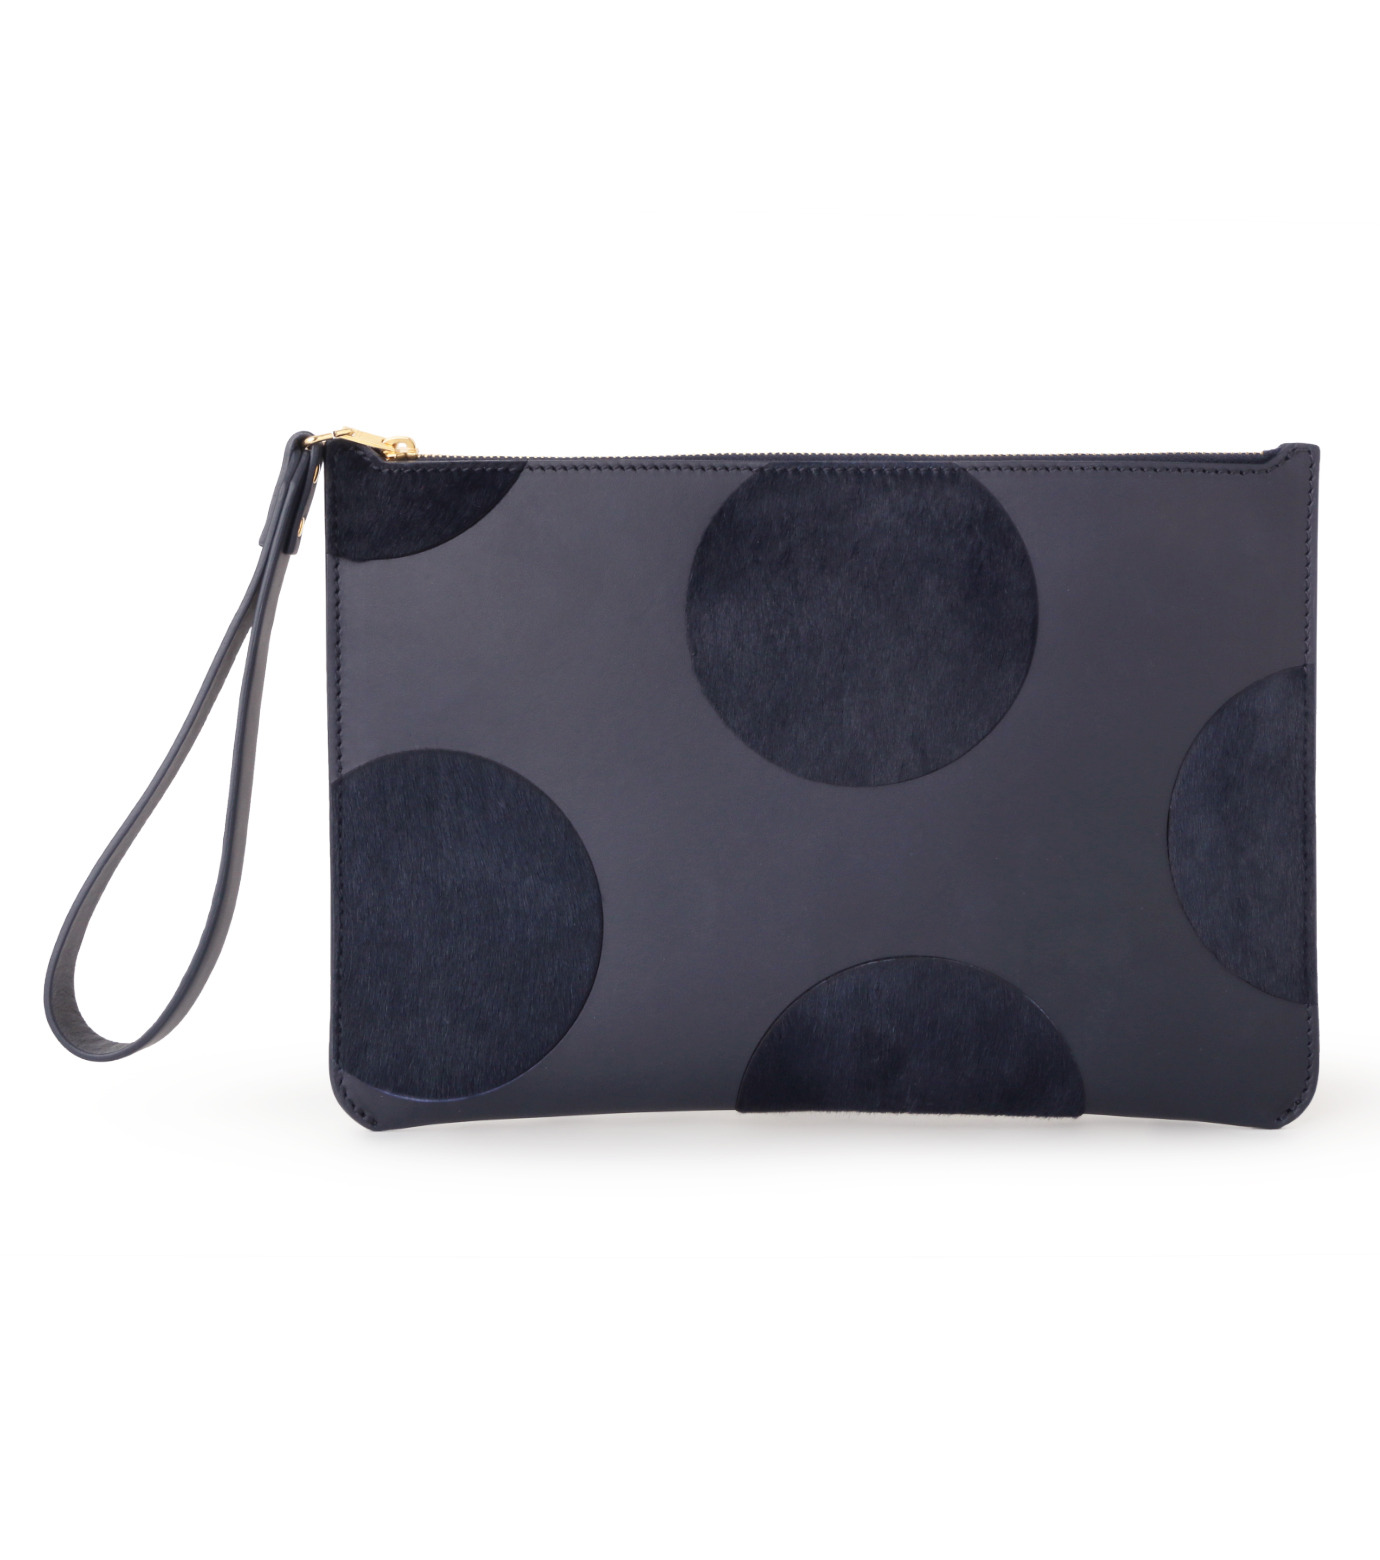 Sophie Hulme(ソフィーヒュルム)のTalbot Pouch Haircalf Dot-NAVY(バッグ/bag)-SG180HI-L 拡大詳細画像1